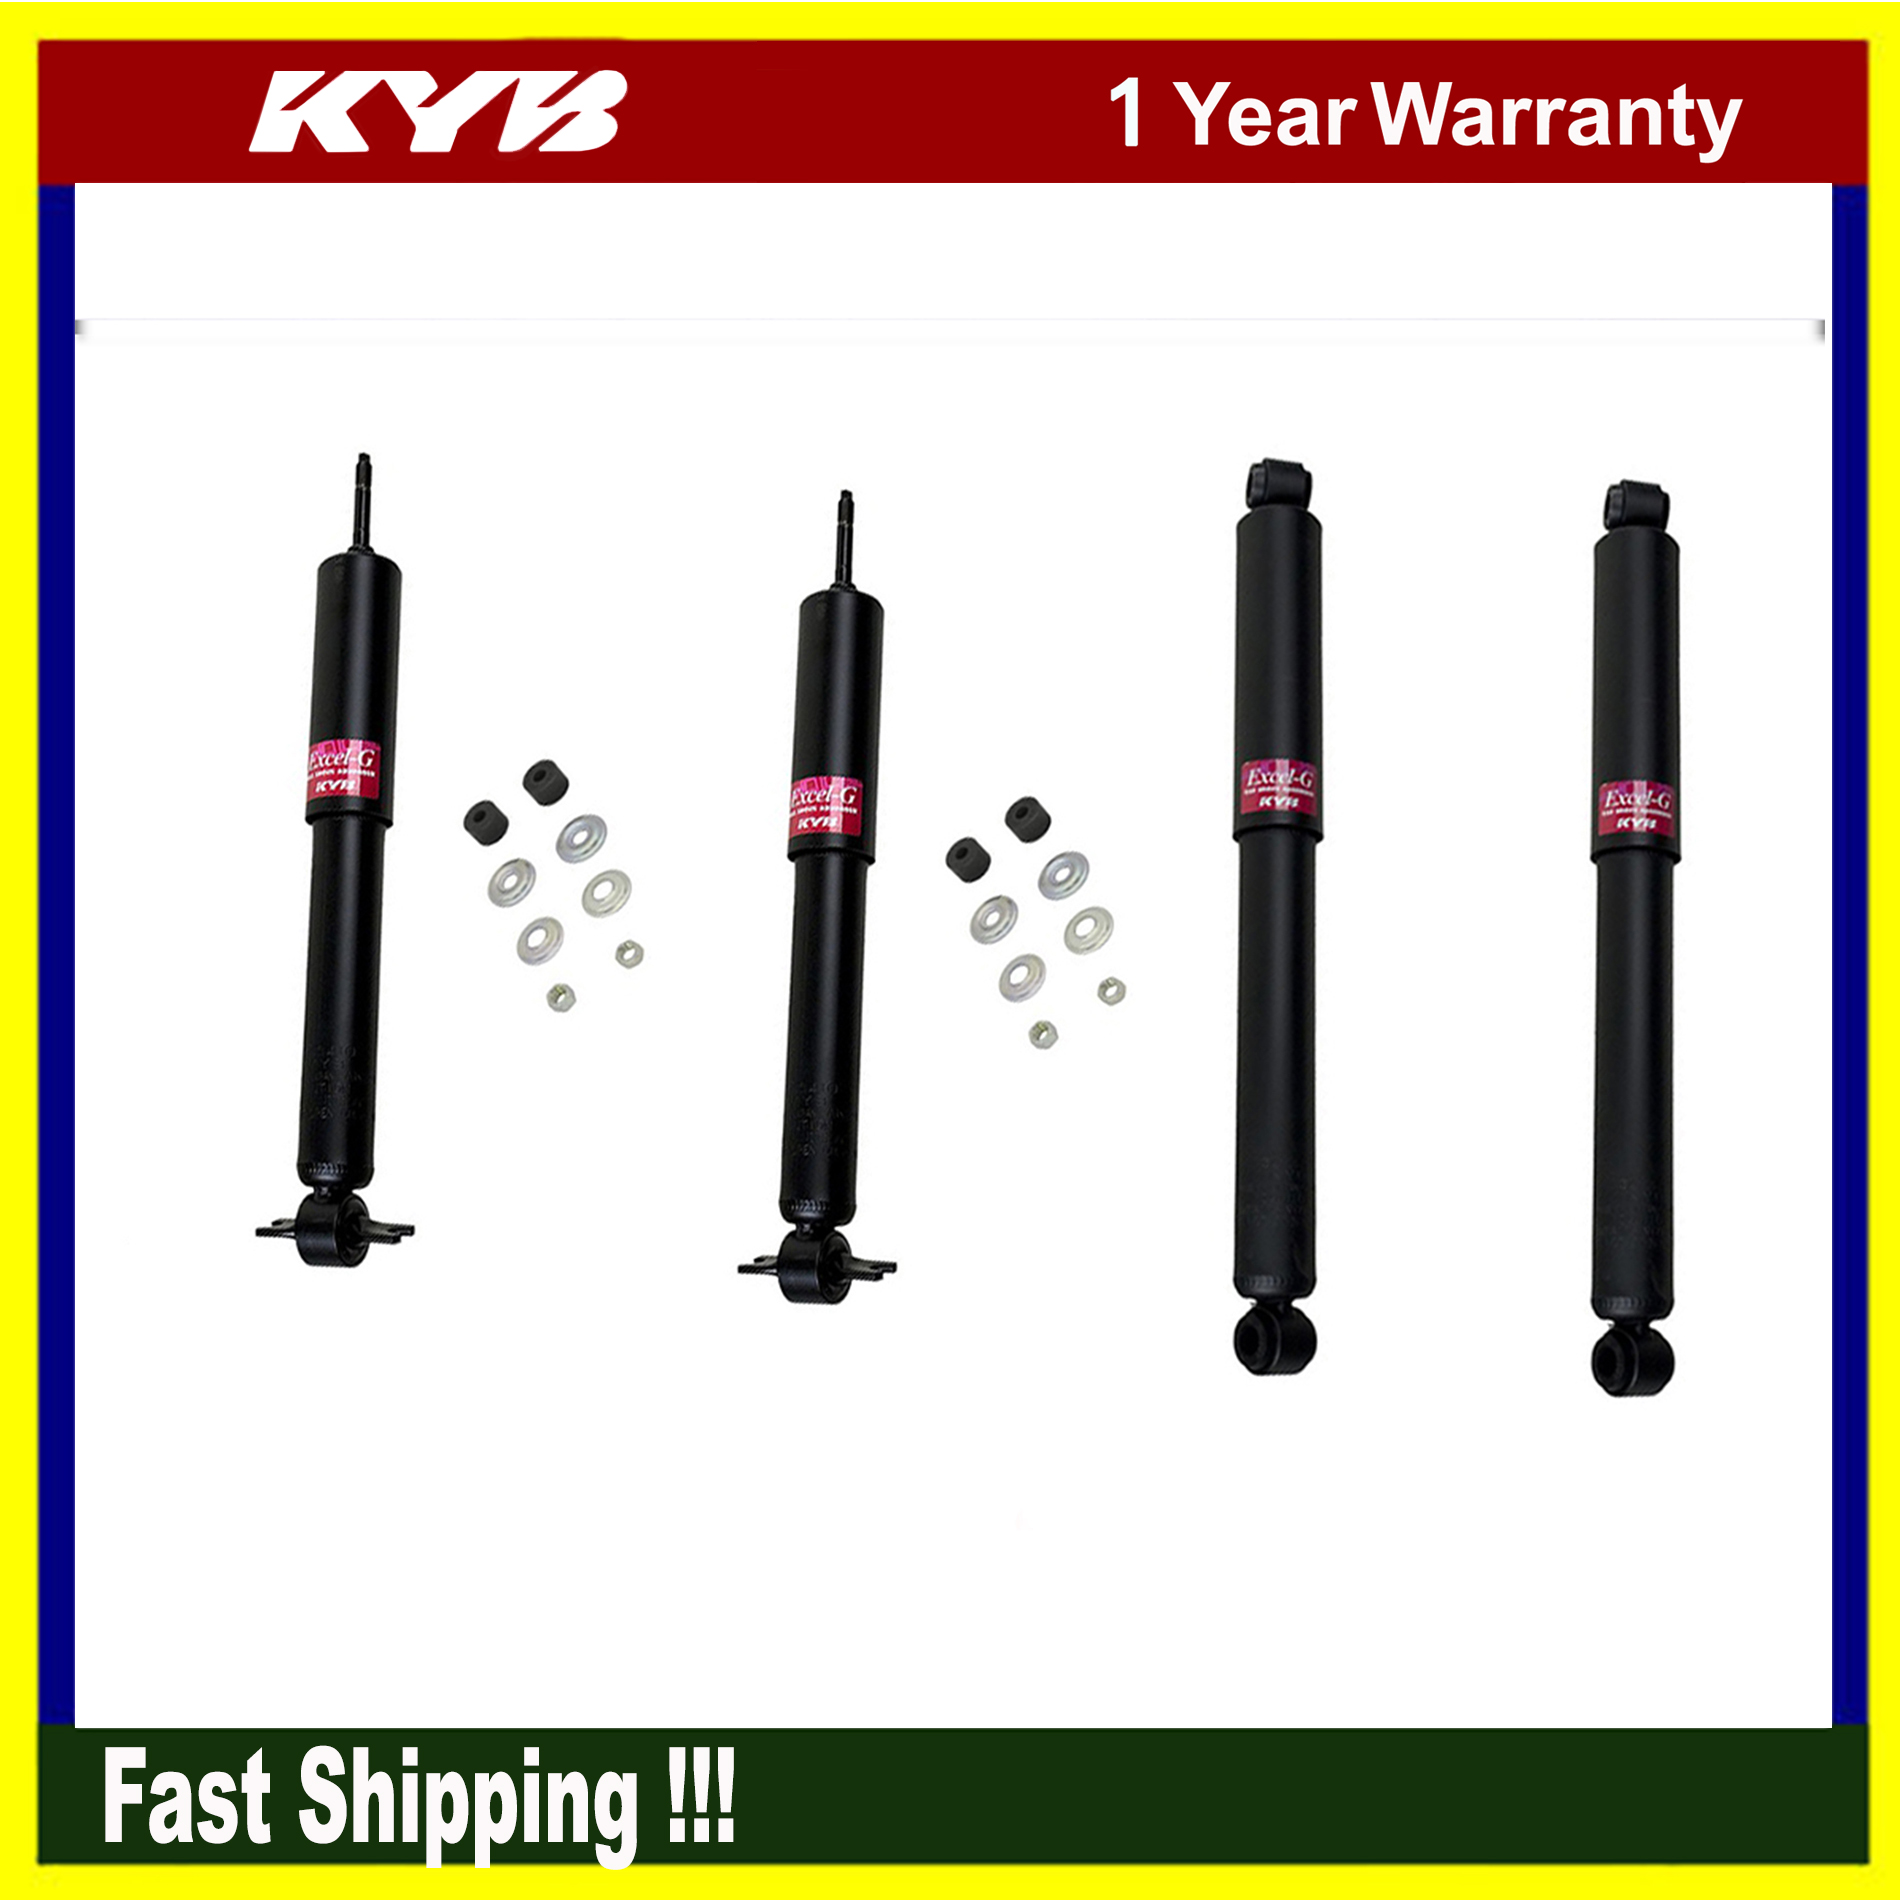 Shock Absorber-Gas-A-Just Rear KYB 554350 fits 05-17 Toyota Tacoma